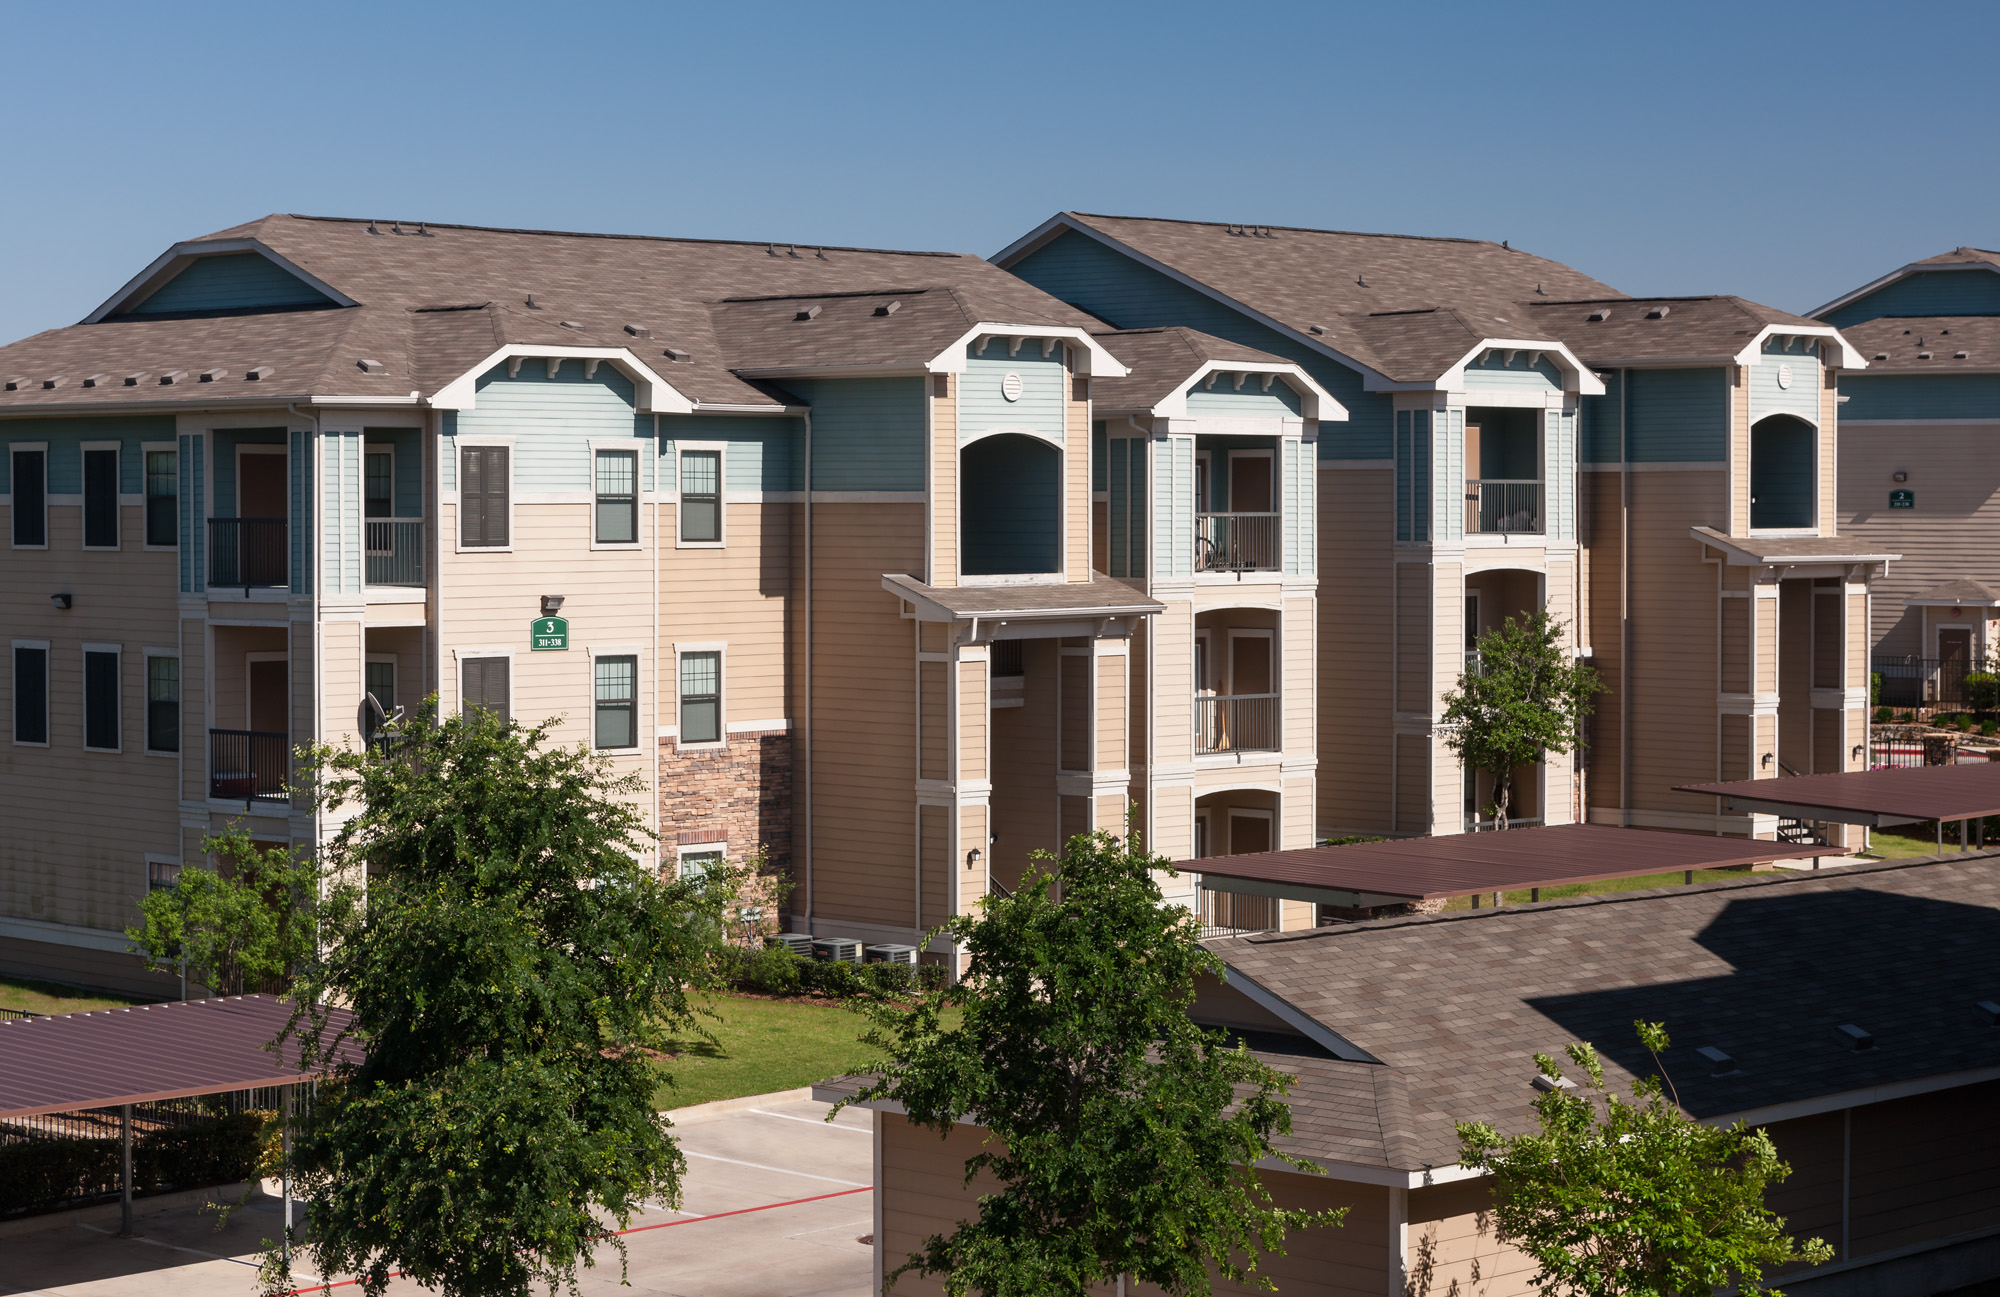 Rent Growth on the Rise for Multifamily Housing